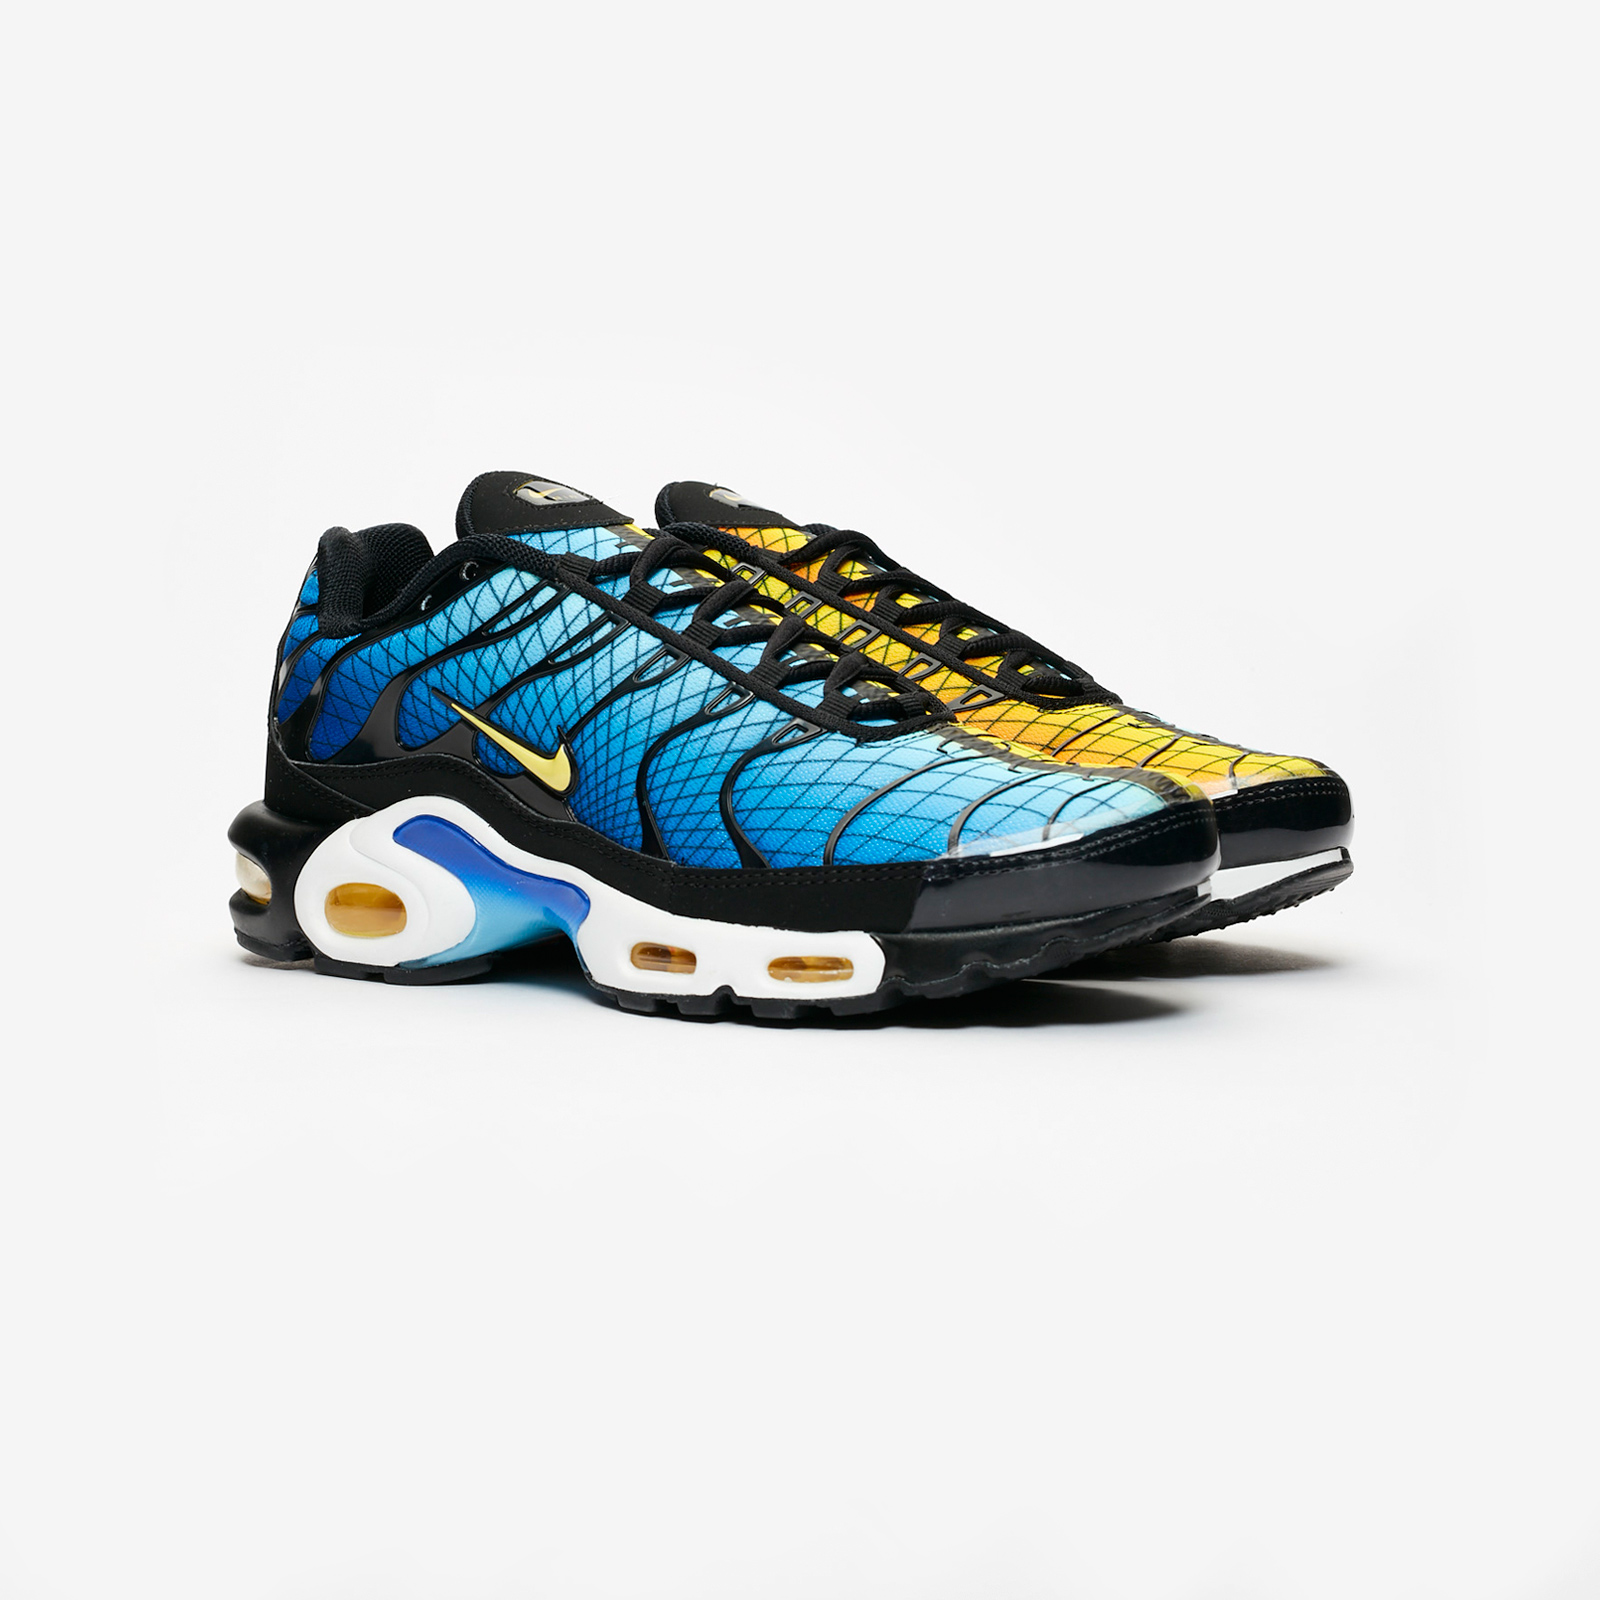 5efa8ceed958 Nike Air Max Plus - Av7021-001 - Sneakersnstuff